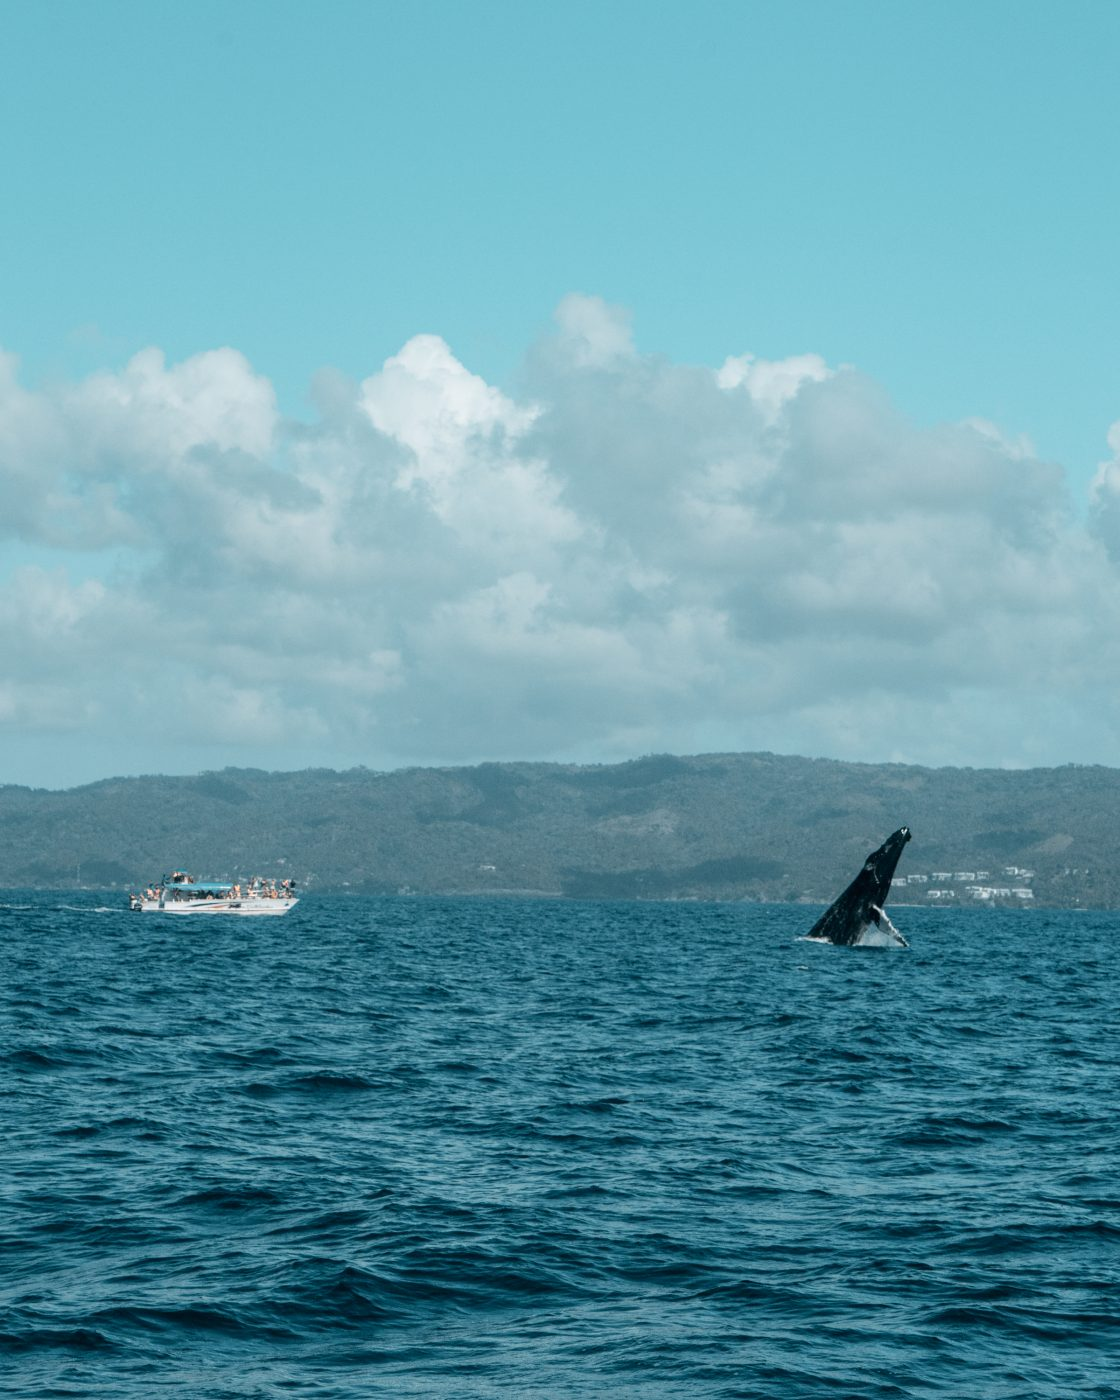 whale watching safari in Samana bay, Dominican Republic